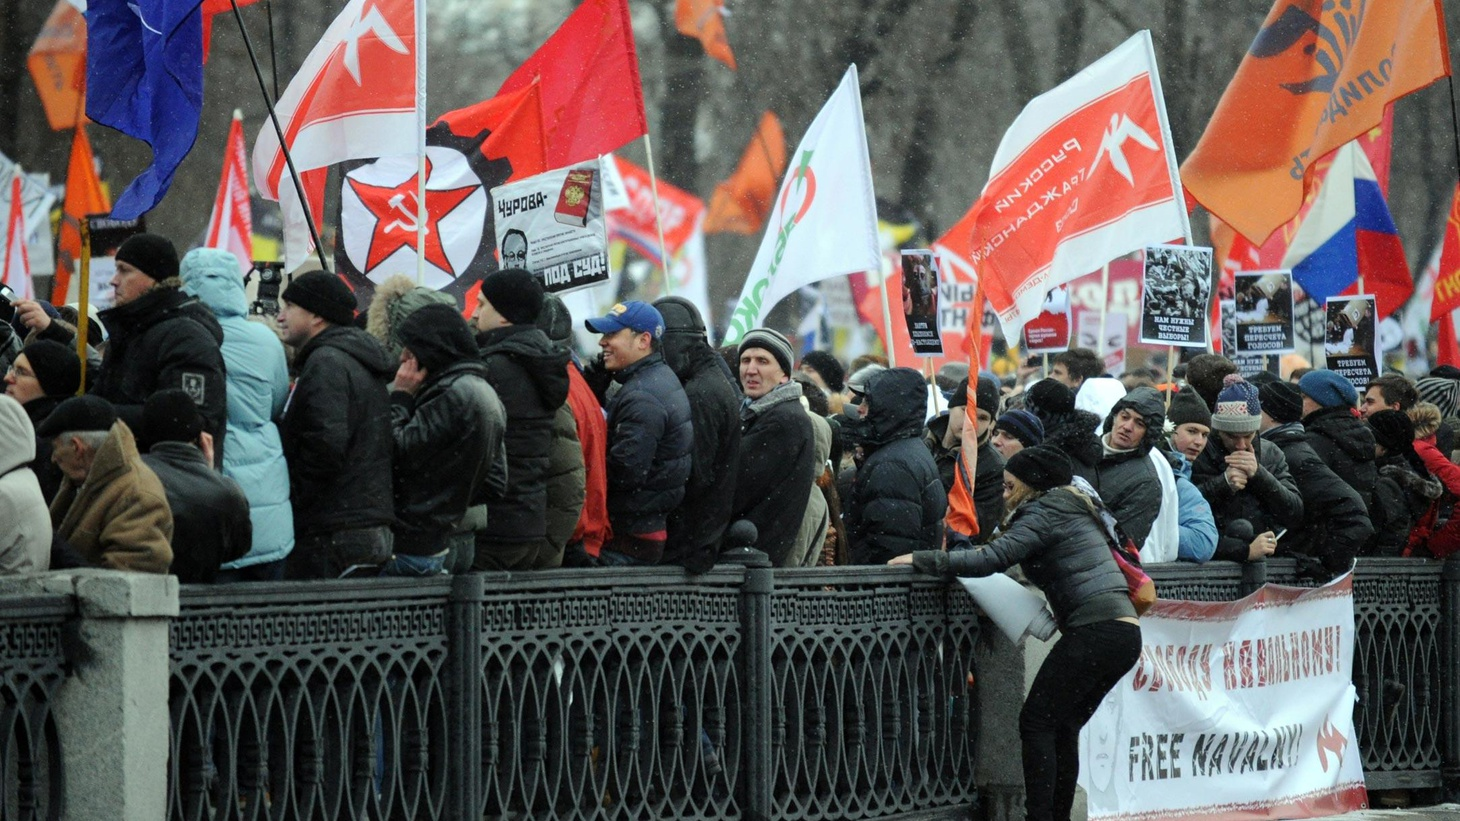 In Russia Saturday, mass protests and political challenges from the left, right and even the Orthodox Church. Is Prime Minister Putin really at risk of losing his power?